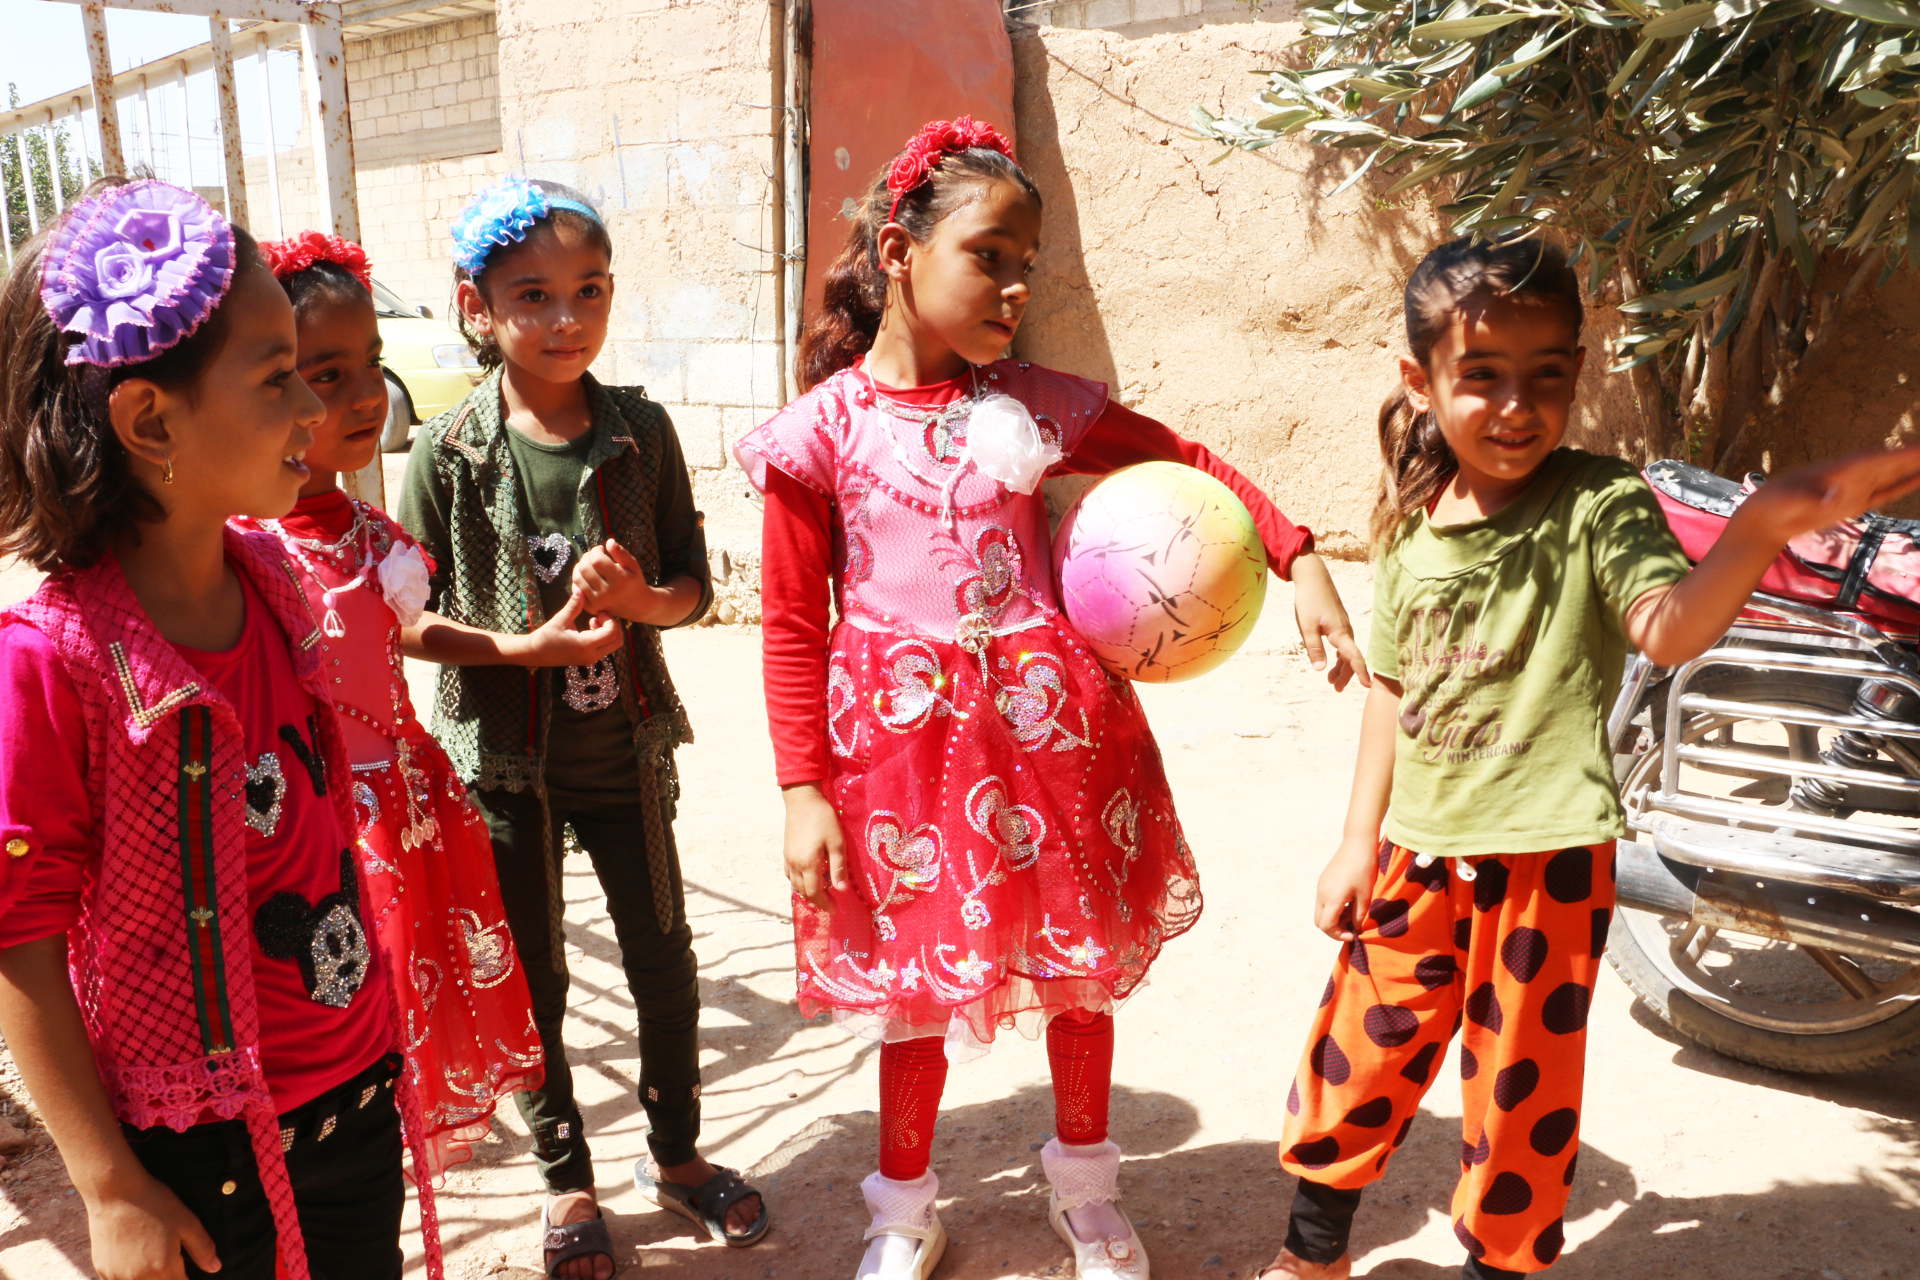 Mohammed's children can play with their friends thanks to help from Caritas Syria